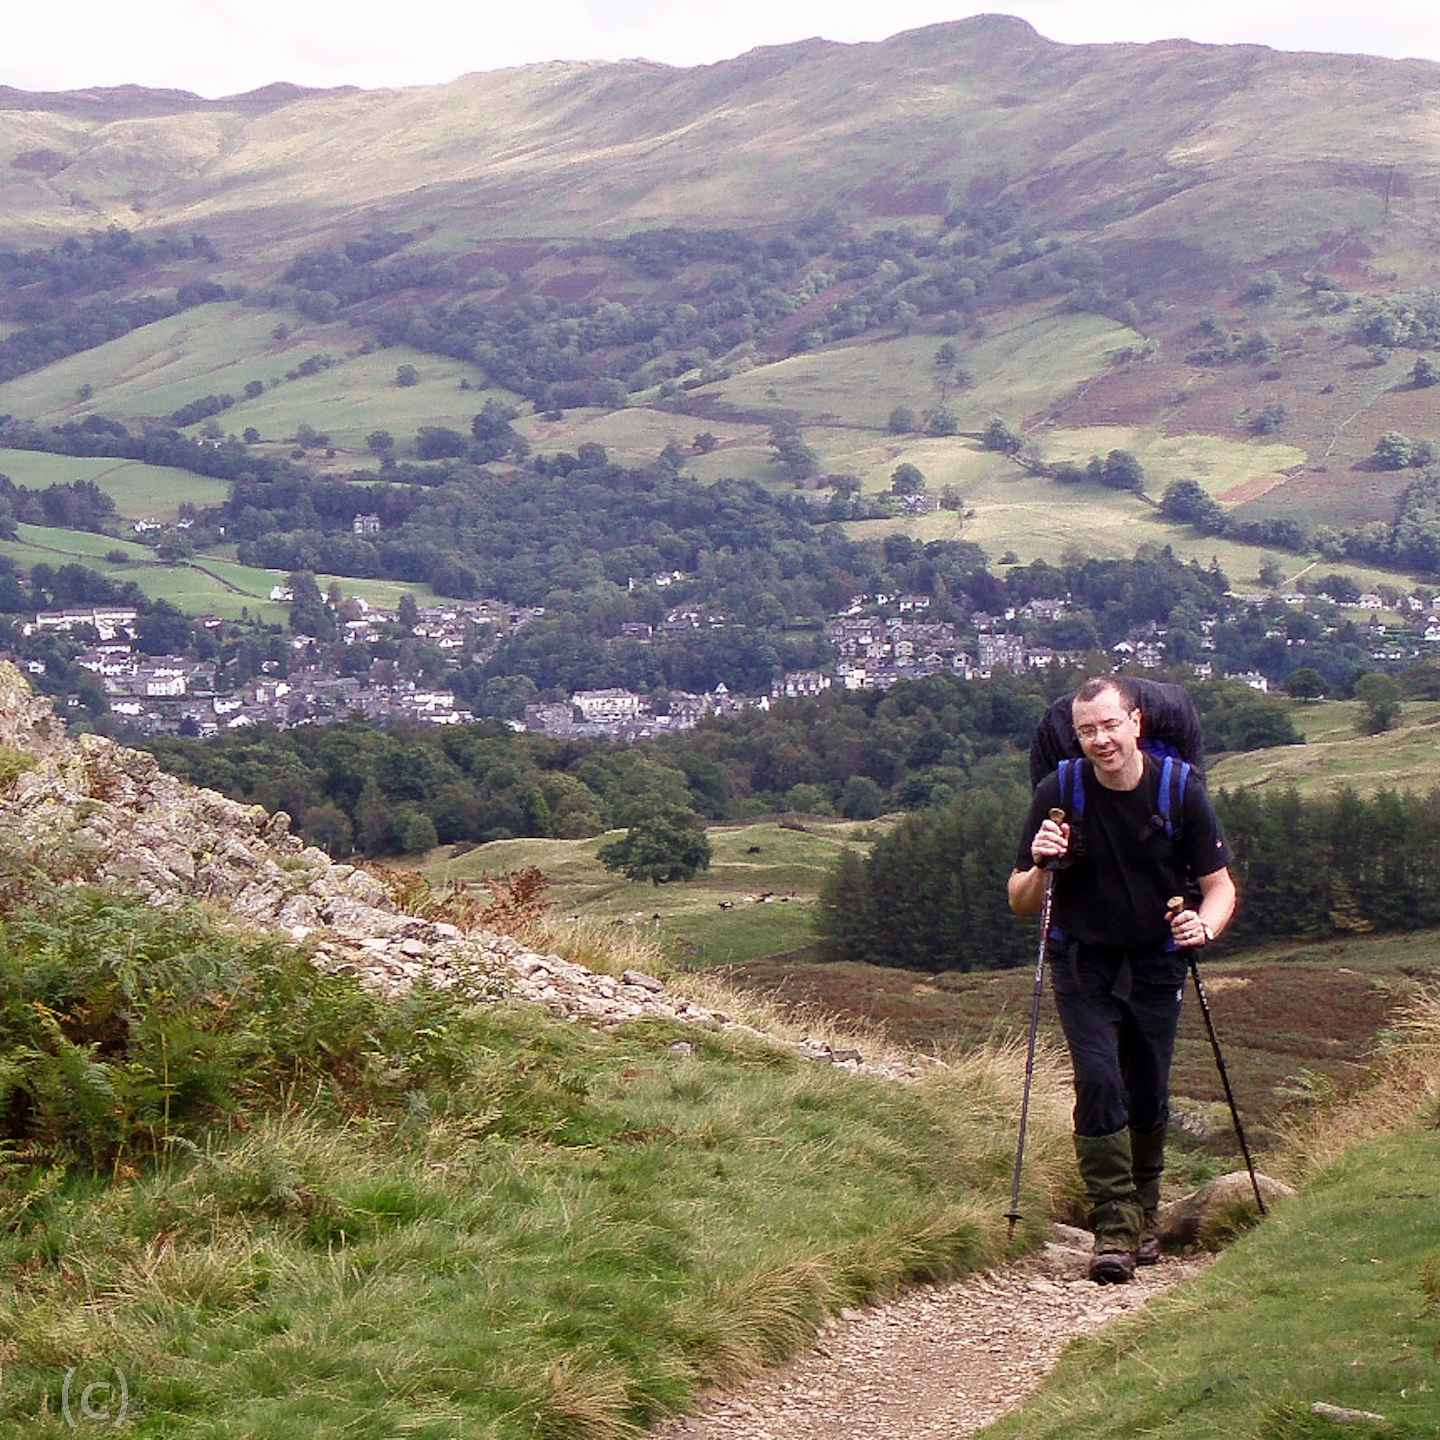 A review of walking poles for hiking with arthritis or joint pain. How to use walking poles and how could walking poles help on a trek or ramble. On Falcondale Life blog. Image description: man with toddler in back carrier using a pair of walking poles.